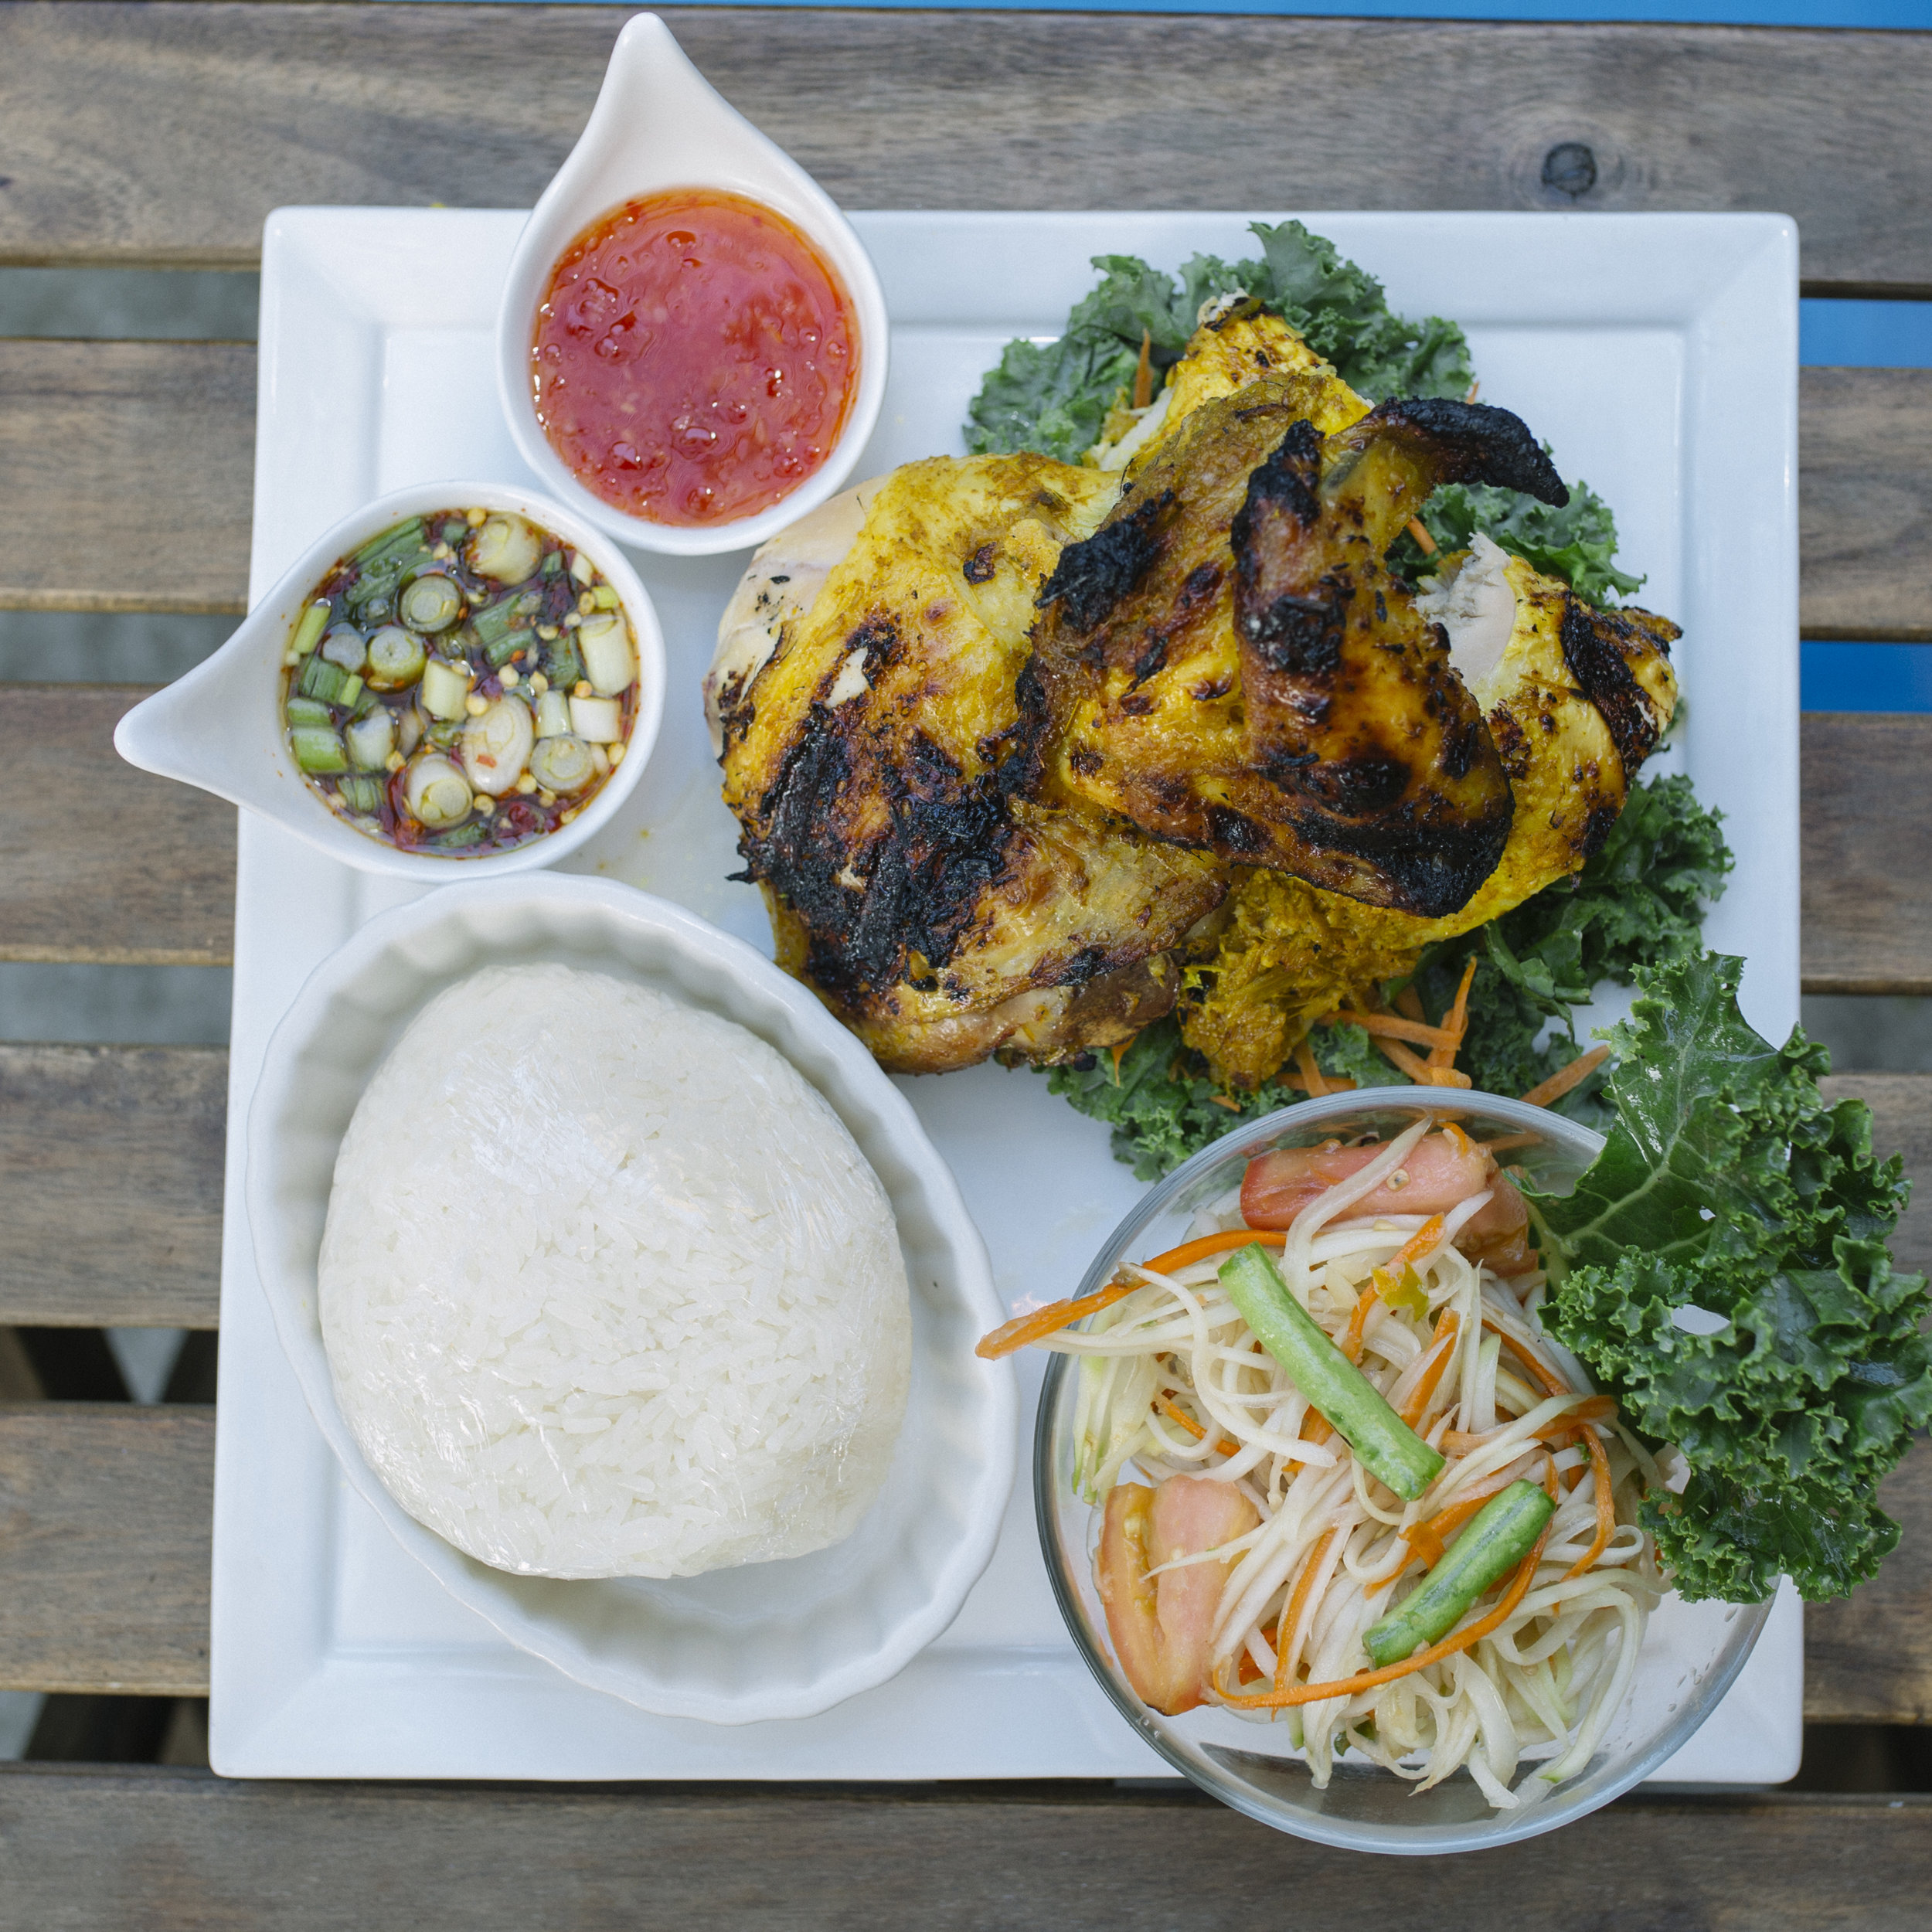 Gai Yang Khao San Kwang - Half Chicken Marinated with Herbs and Roasted to Perfection served with Tum Thai and Sticky Rice